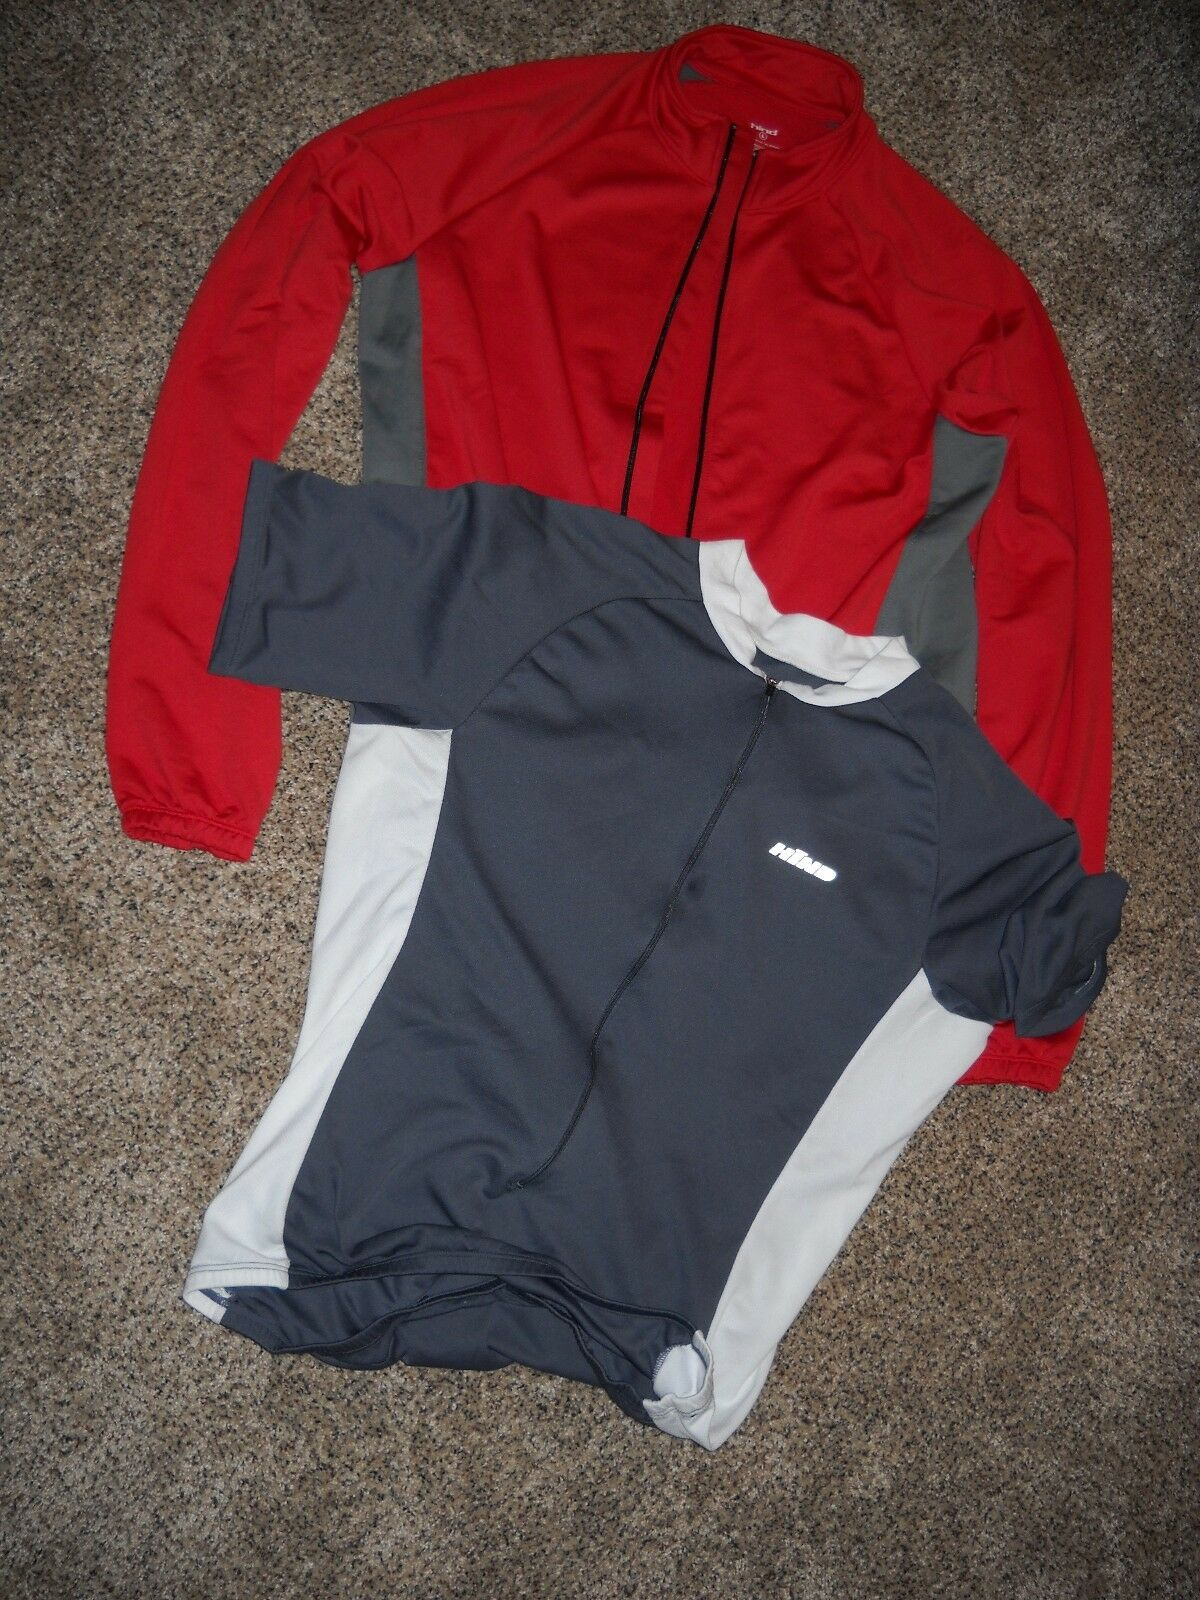 TWO Hind Cycling Jerseys-Large Mens